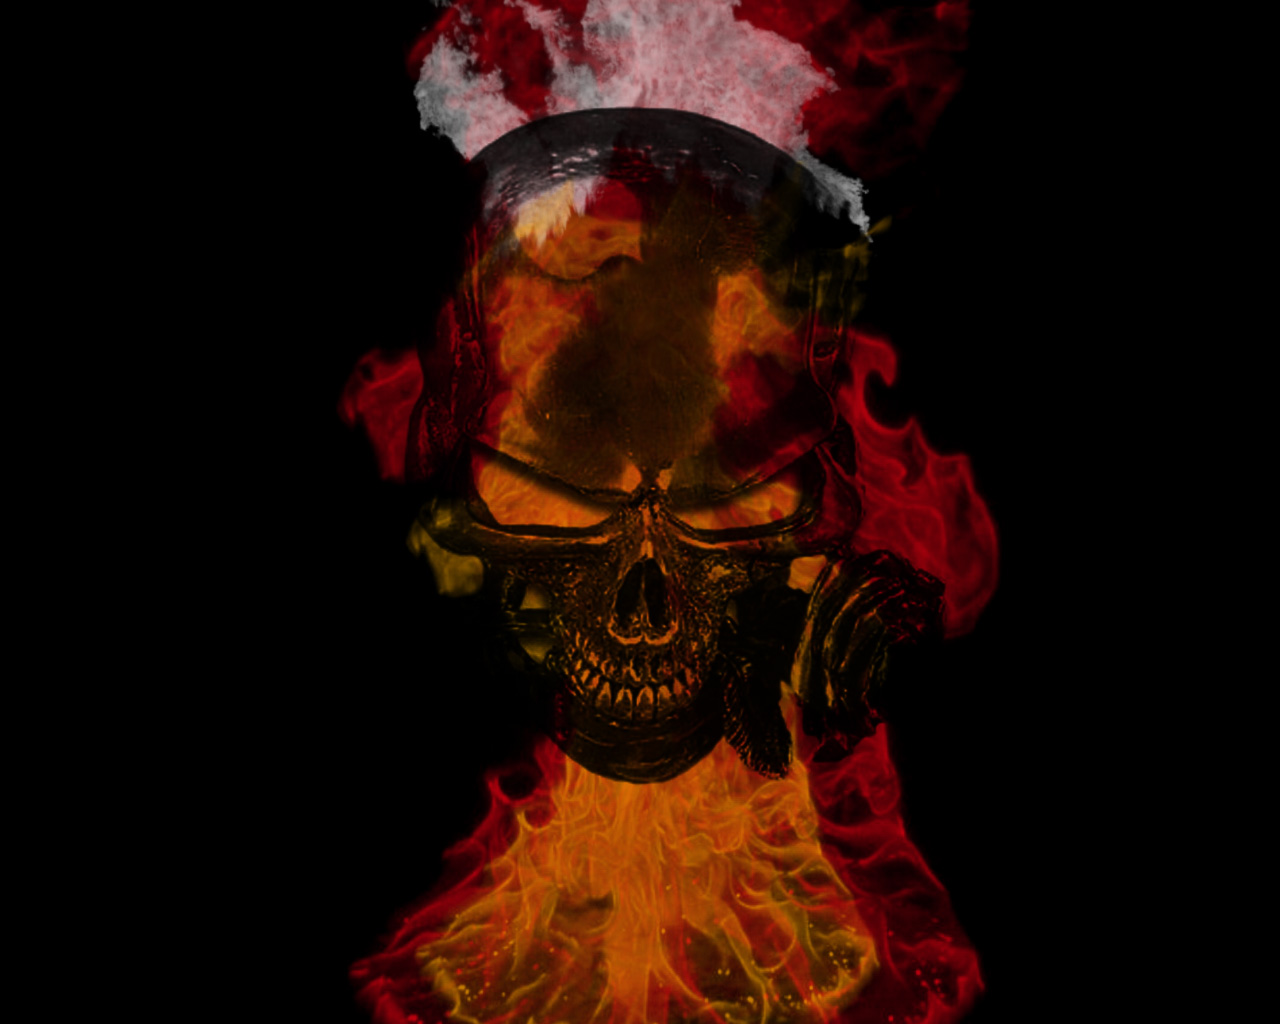 Flaming Skull Wallpapers Desktop Flaming skull 1280x1024